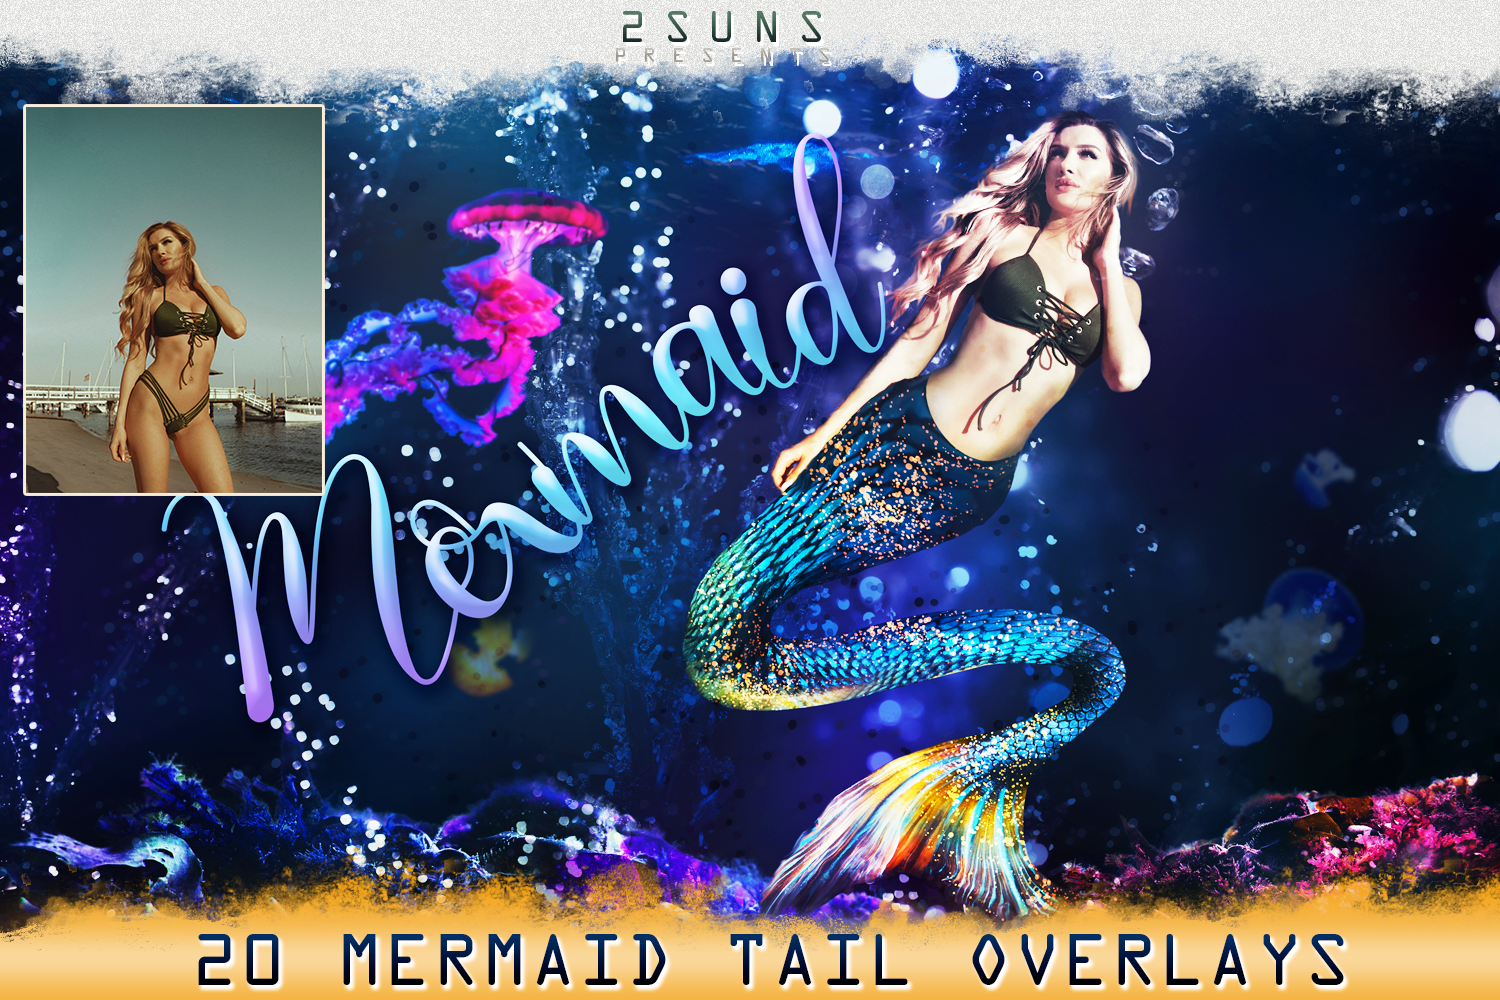 Mermaid tail, tails, overlays, Clipart, PNG, example image 2